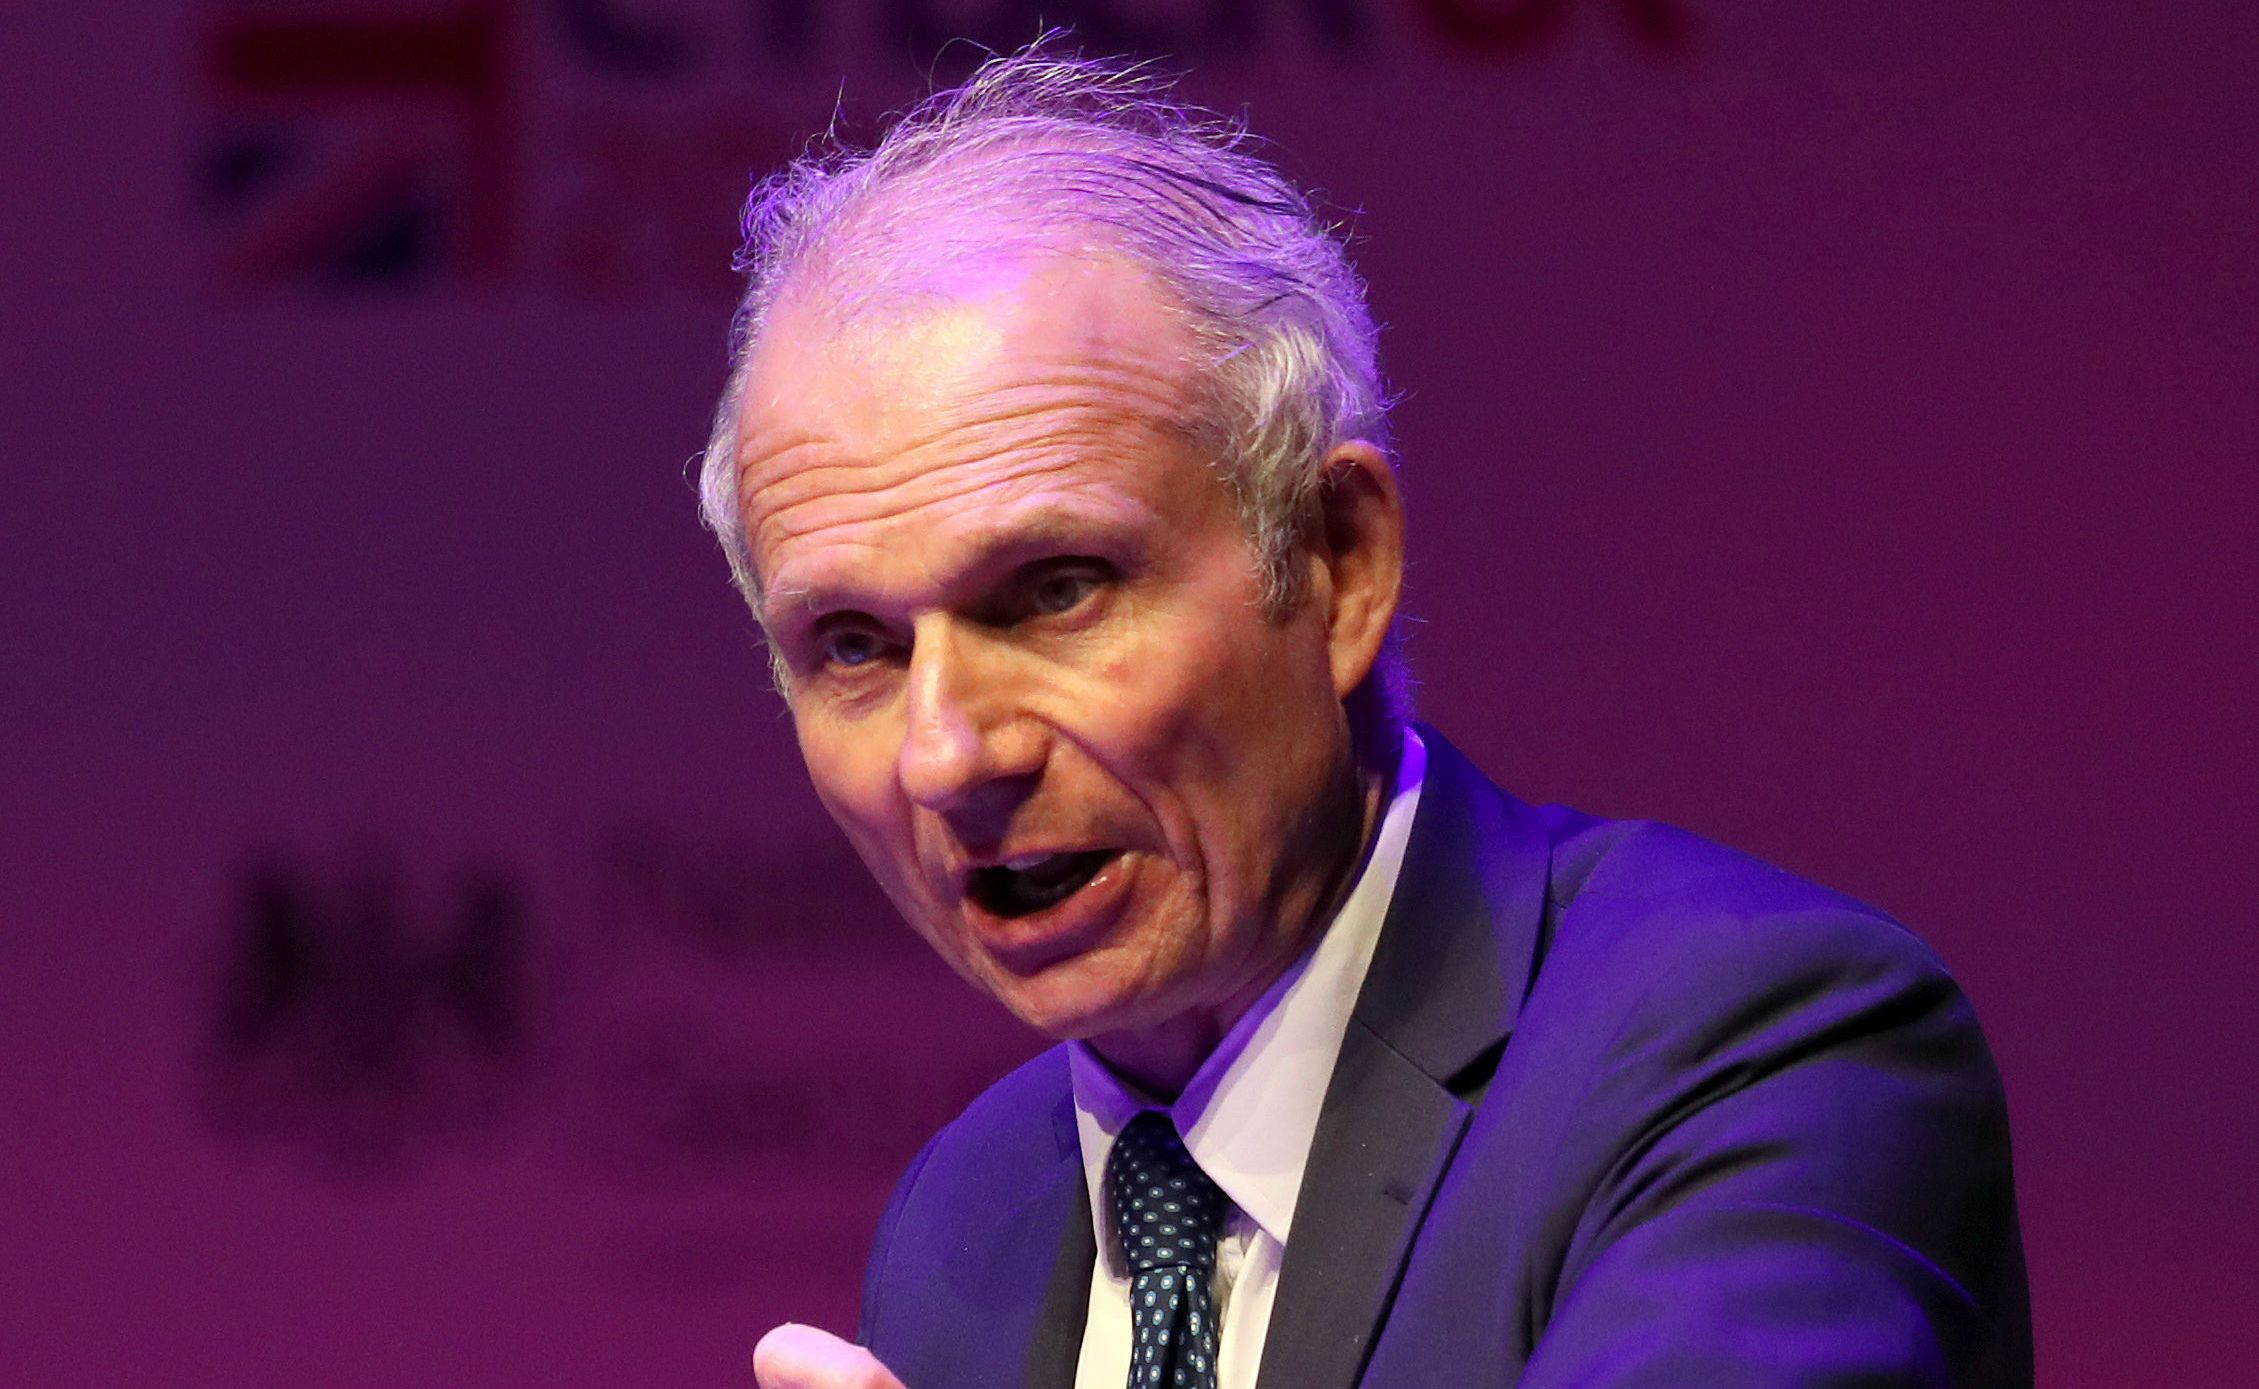 David Lidington said the Scottish Government should focus on other things